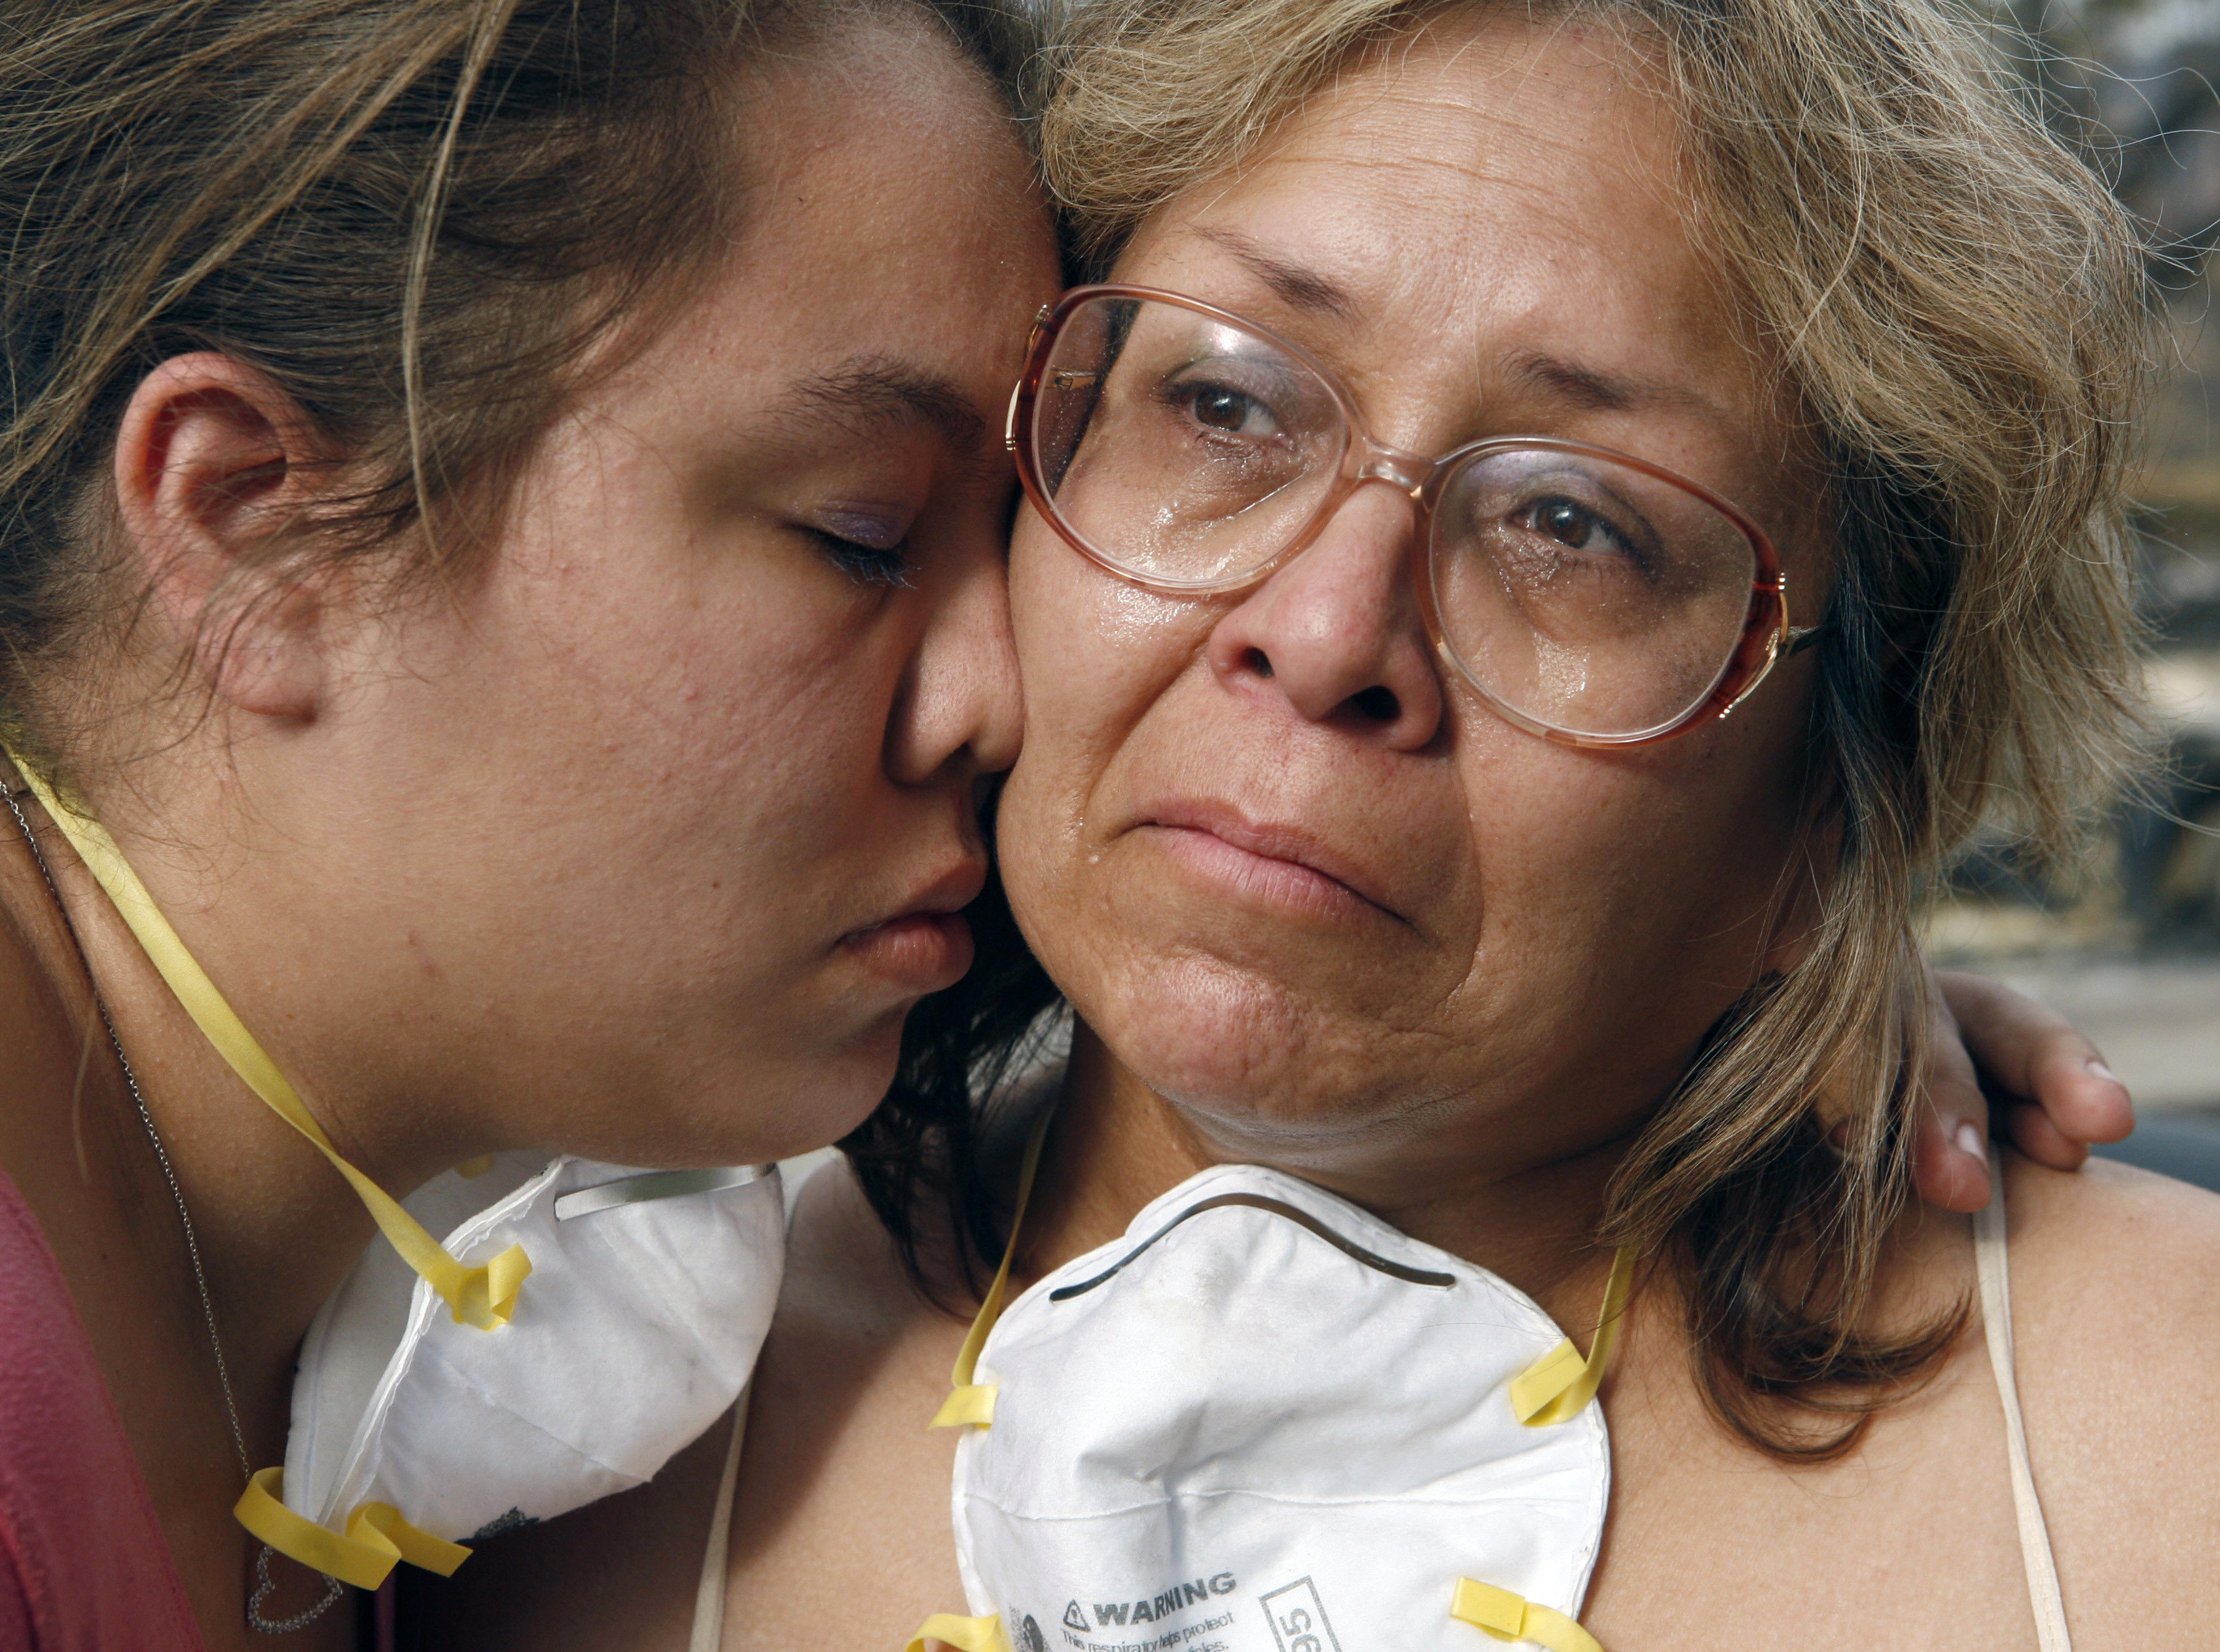 Lori Hutter (R) cries with her daughter Cassie next to their burned out home in the Rancho Bernardo neighborhood of San Diego, California October 27, 2007. Risk Management Solutions, which predicts and assesses insured damages, said in a statement that the wildfires which have devastated Southern California would likely cost insurers between $900 million and $1.6 billion. REUTERS/John Gress (UNITED STATES) - GM1DWLUTSGAA